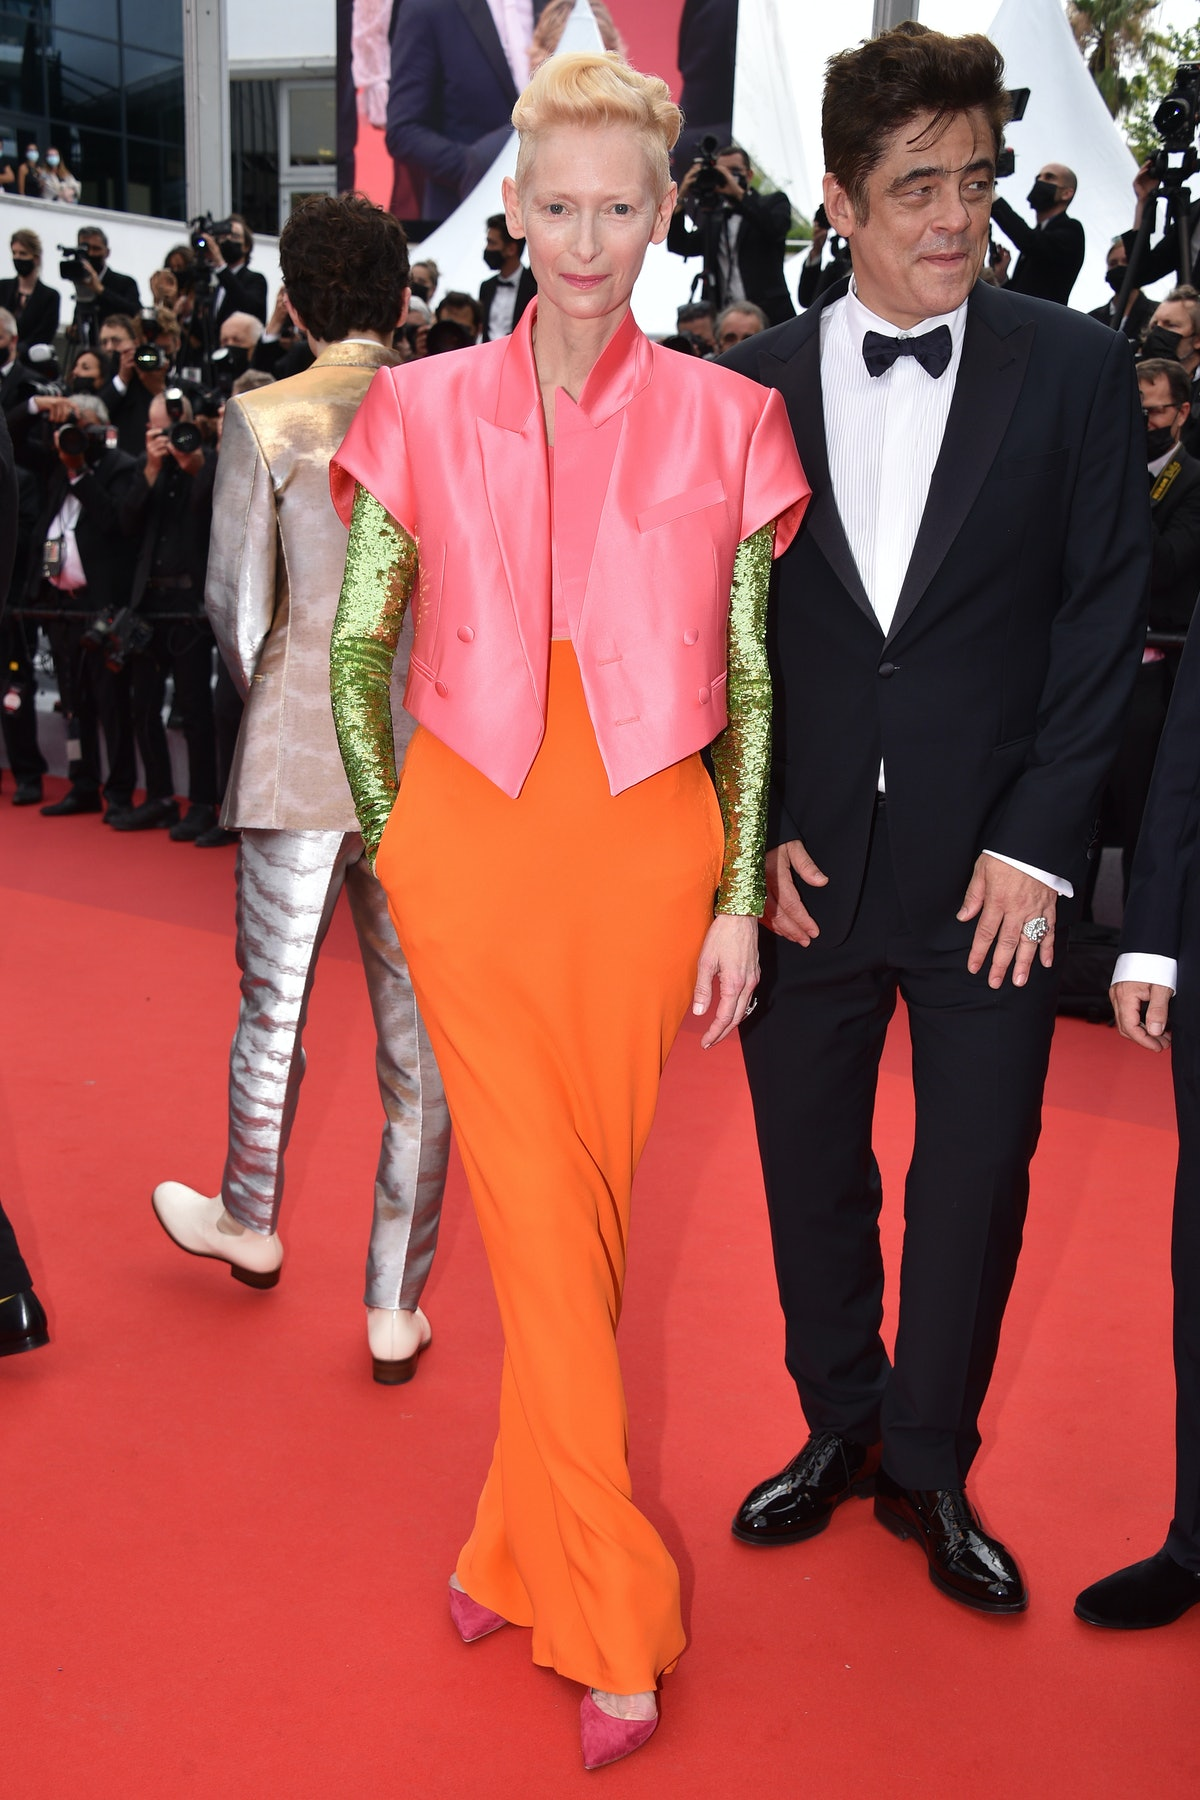 """CANNES, FRANCE - JULY 12: Tilda Swinton attends the """"The French Dispatch"""" screening during the 74th annual Cannes Film Festival on July 12, 2021 in Cannes, France. (Photo by Lionel Hahn/Getty Images)"""